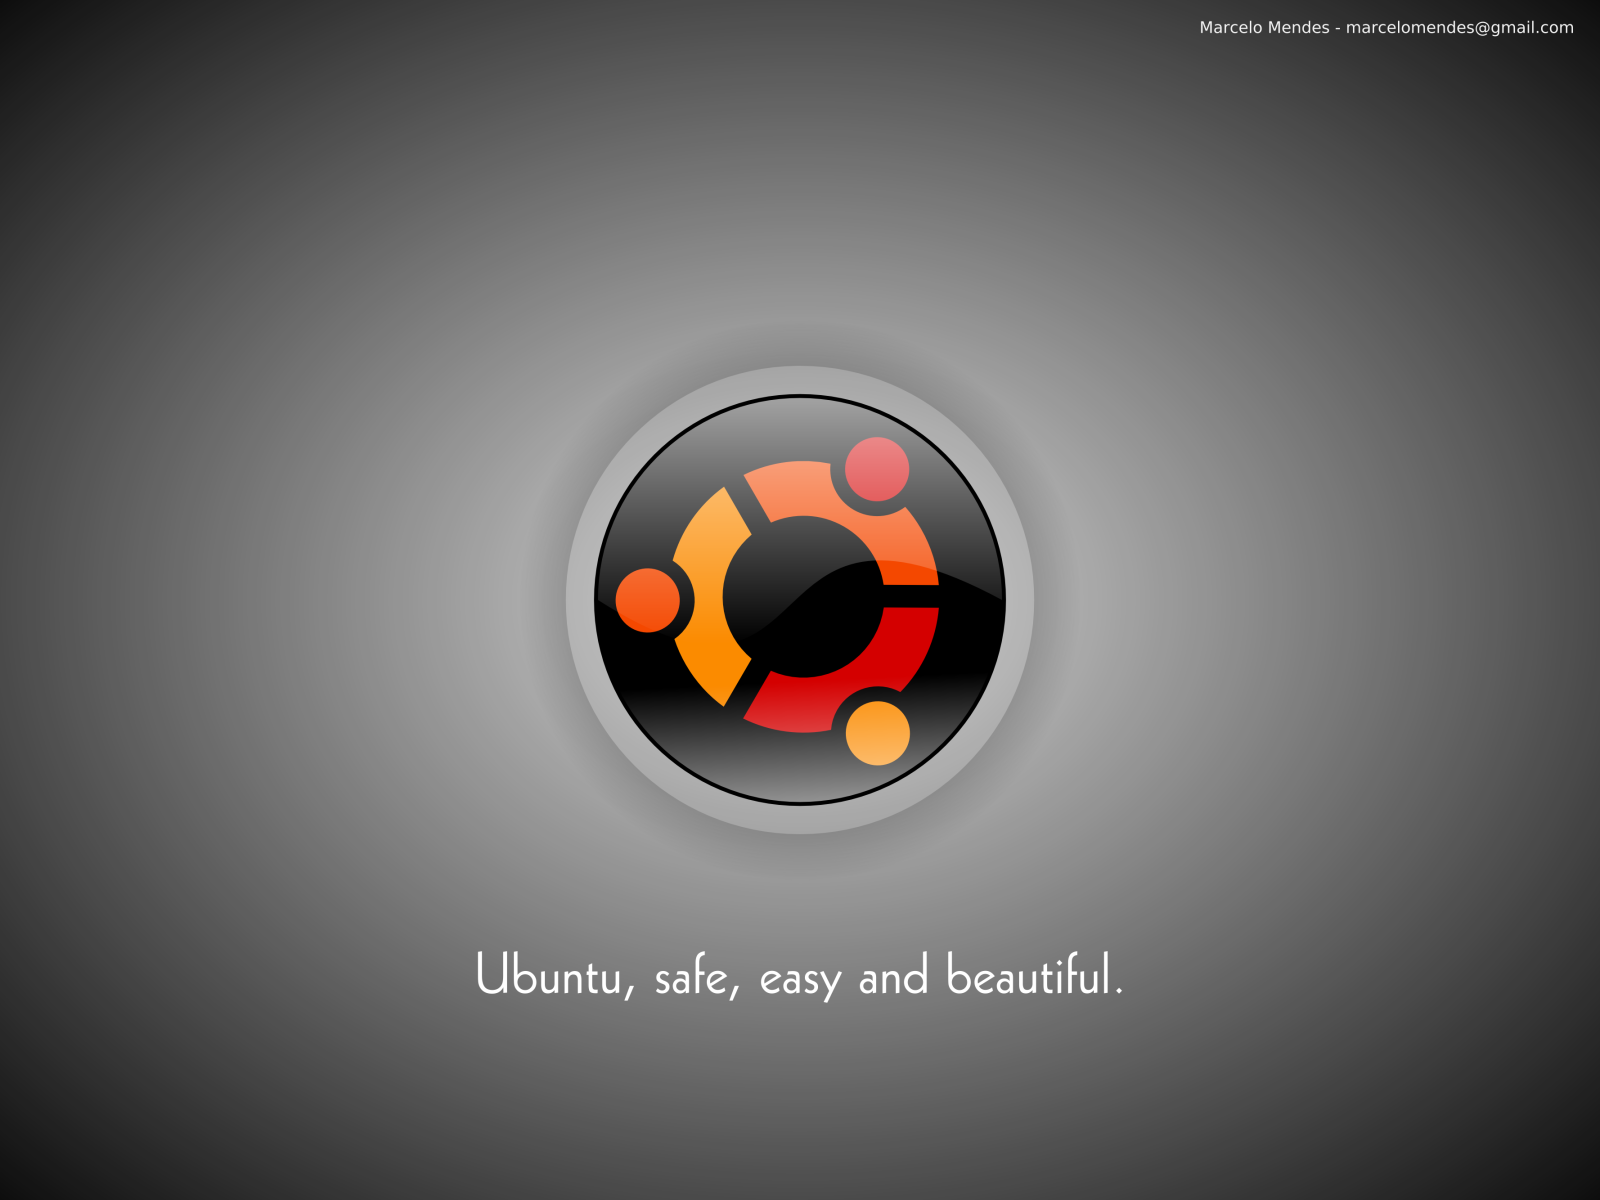 ubuntu windows 7 style wallpapers - Windows 7 Wallpapers HD NoobsLab Ubuntu Linux